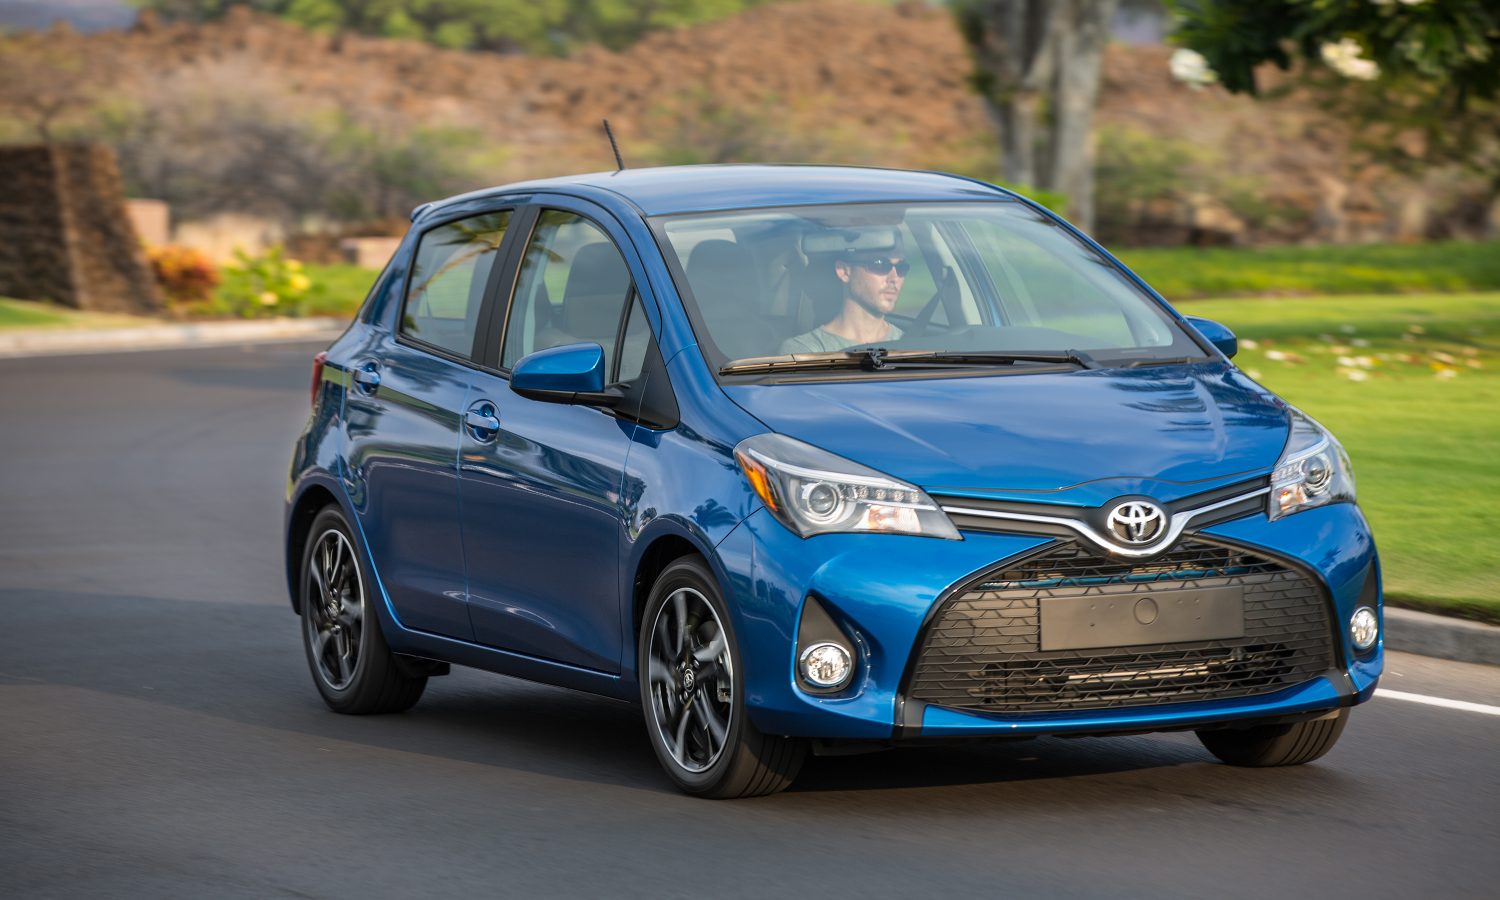 2017 Toyota Yaris Puts Big Safety in a Small Car with Standard Toyota Safety Sense-C